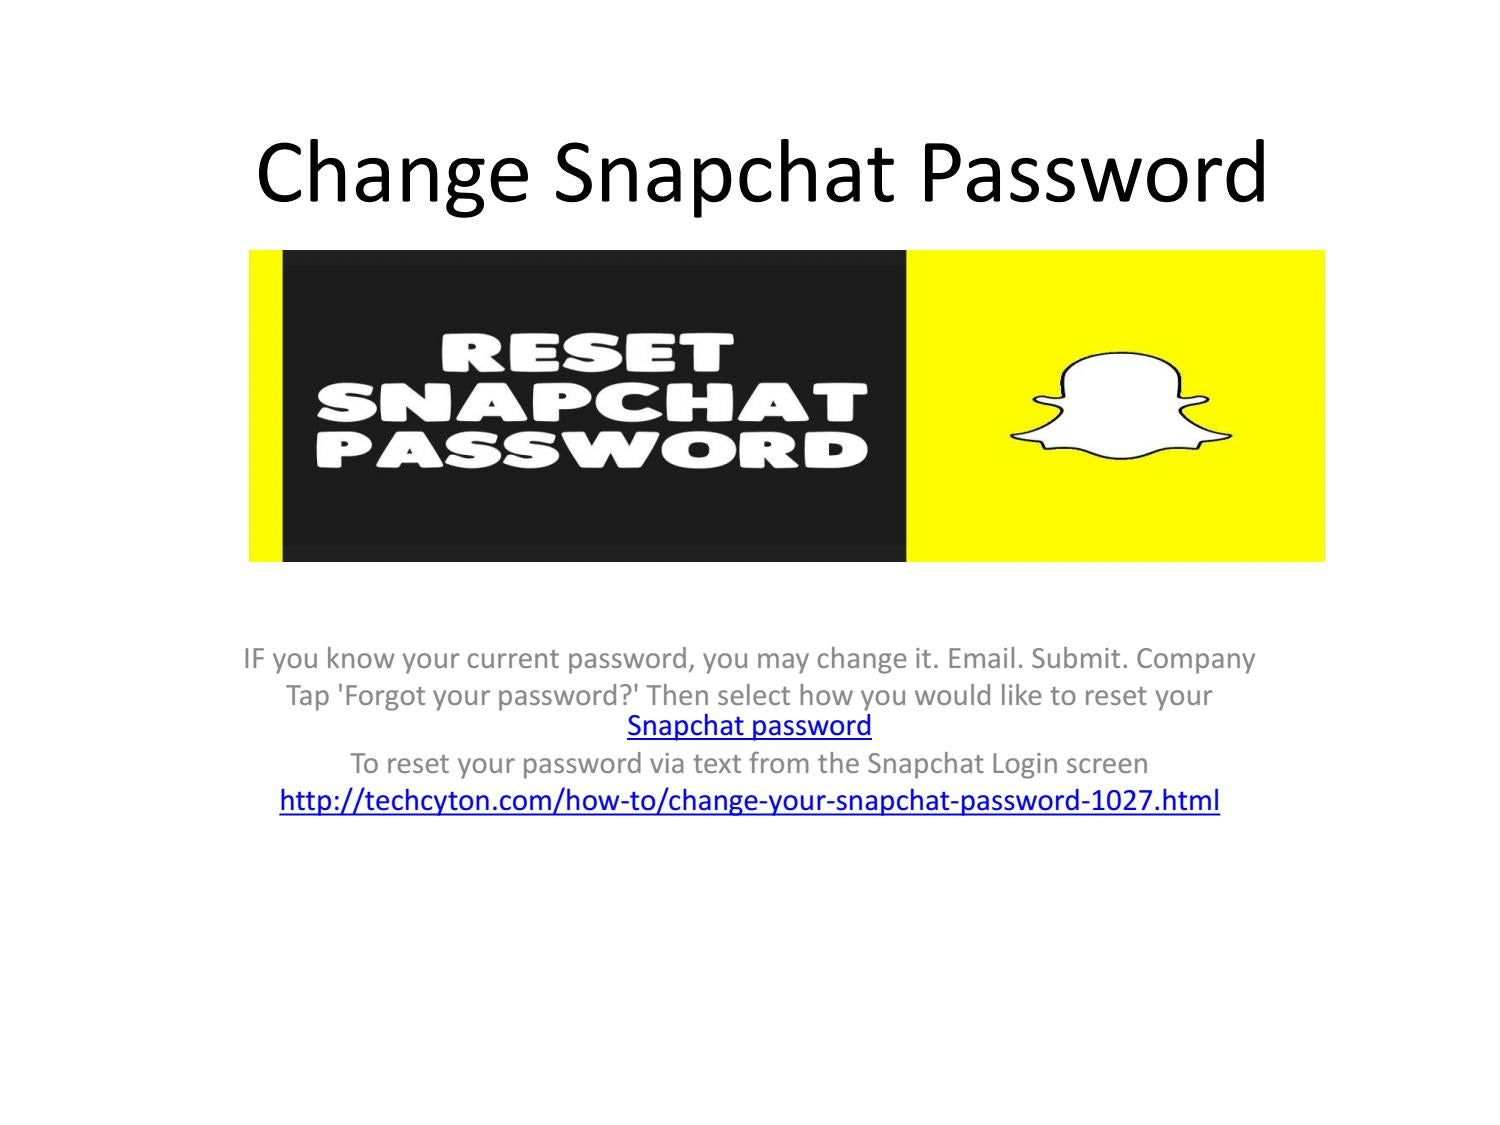 Snapchat password reset output by gaylonnell - Issuu